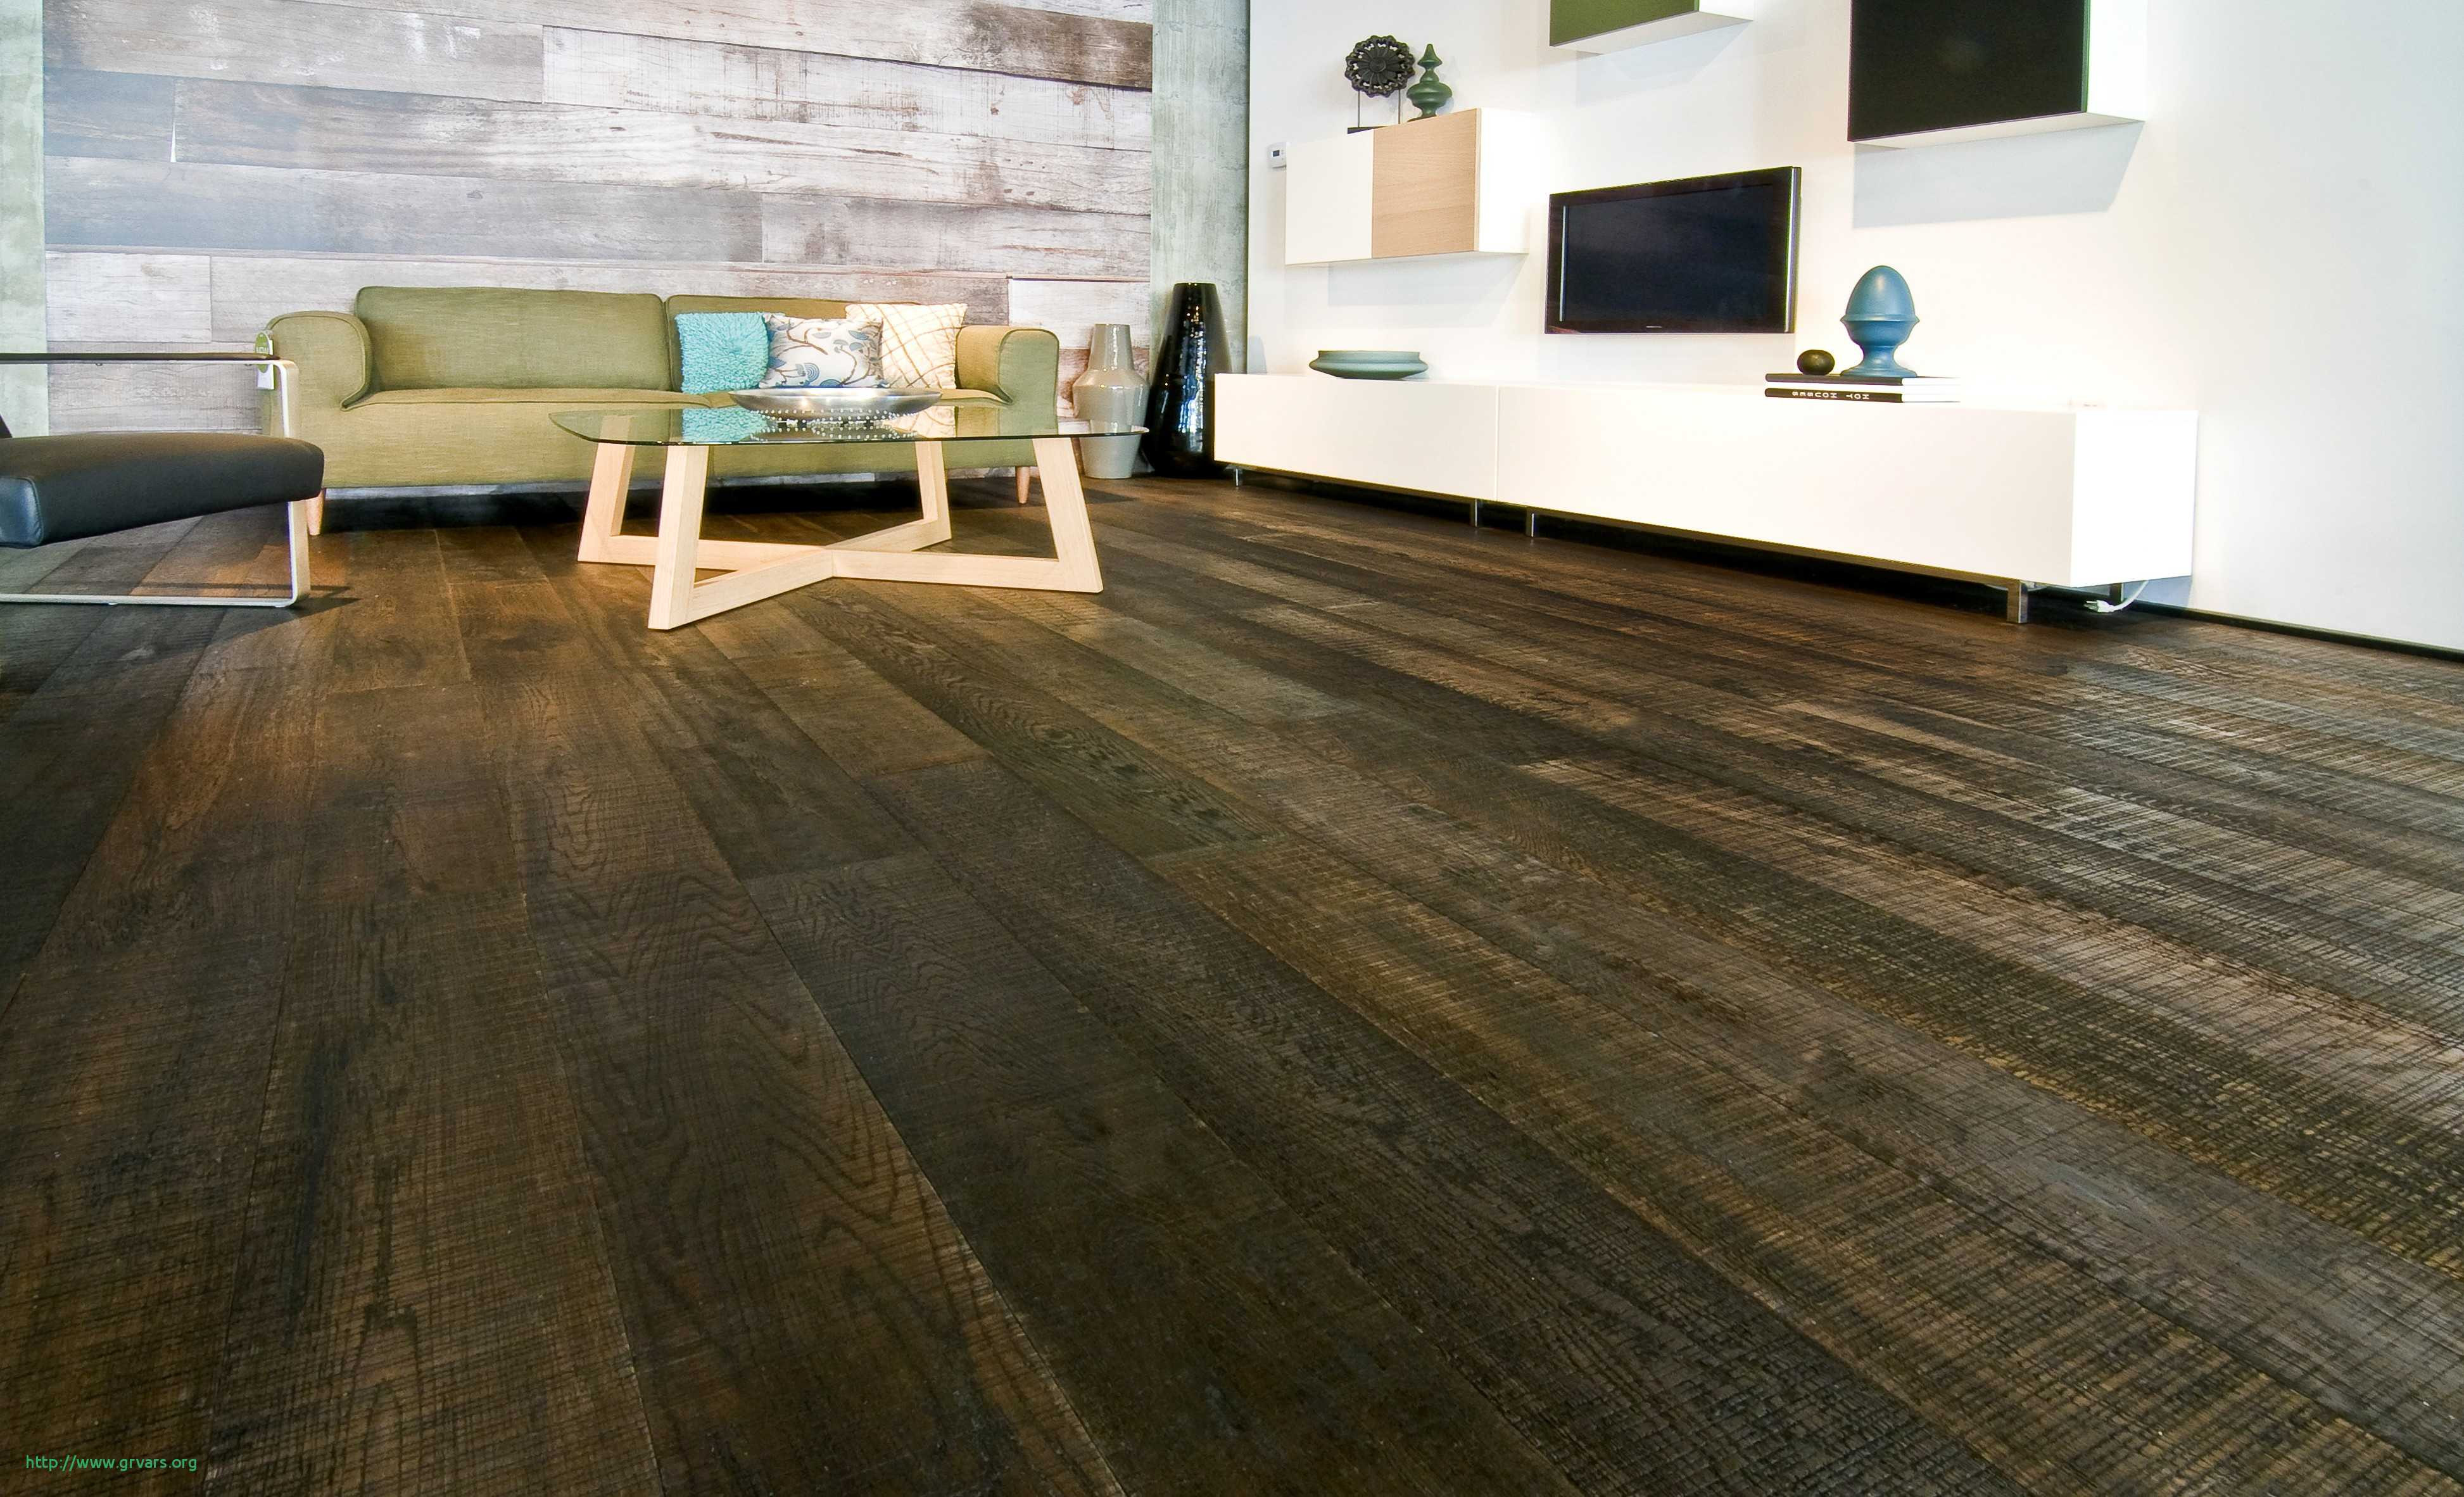 unfinished hardwood flooring st louis of 21 beau cheapest hardwood flooring in toronto ideas blog pertaining to cheapest hardwood flooring in toronto charmant engaging discount hardwood flooring 5 where to buy inspirational 0d